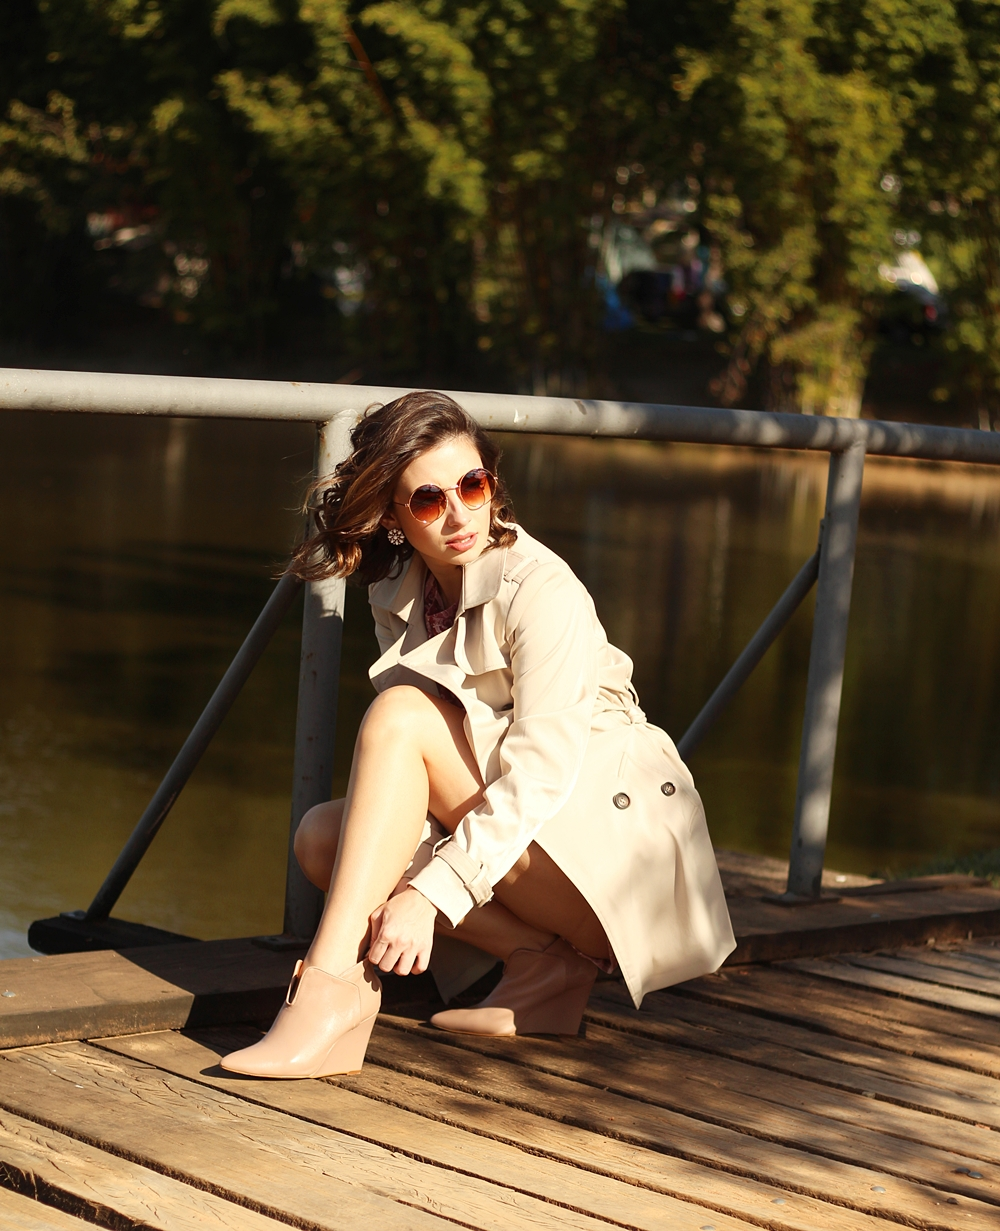 como-usar-trench-coat-look-macaquinho-blog-van-duarte-2